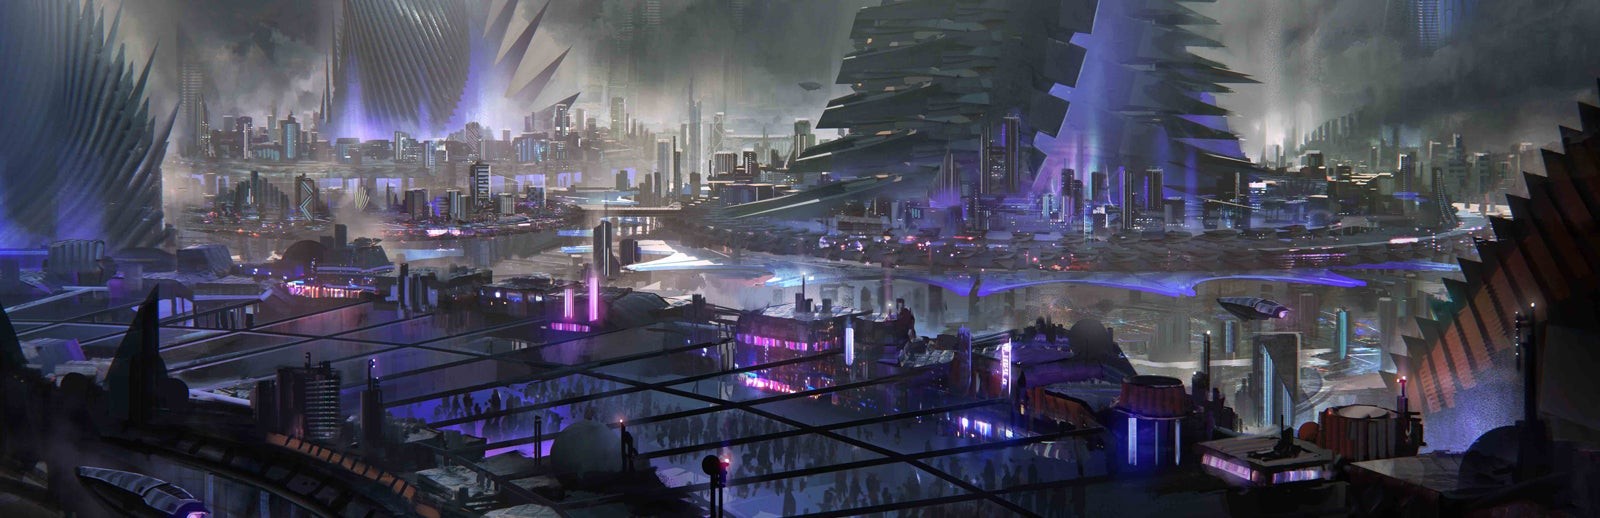 Spine-like spires tower over a neon-lit cityscape deep underground